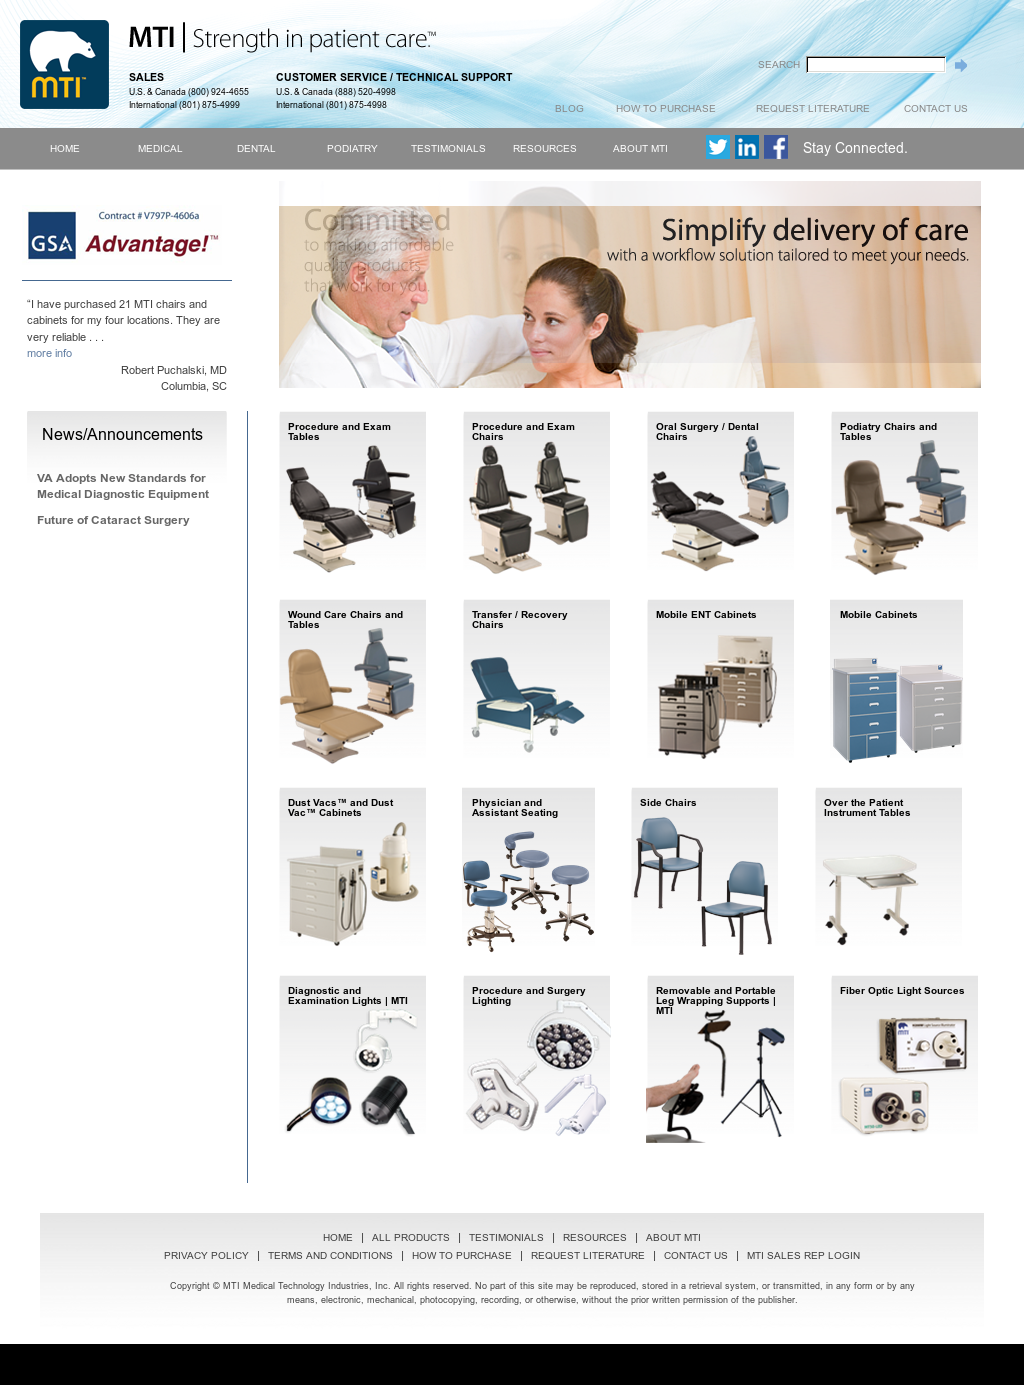 Mti Medical Technology Industries Website History